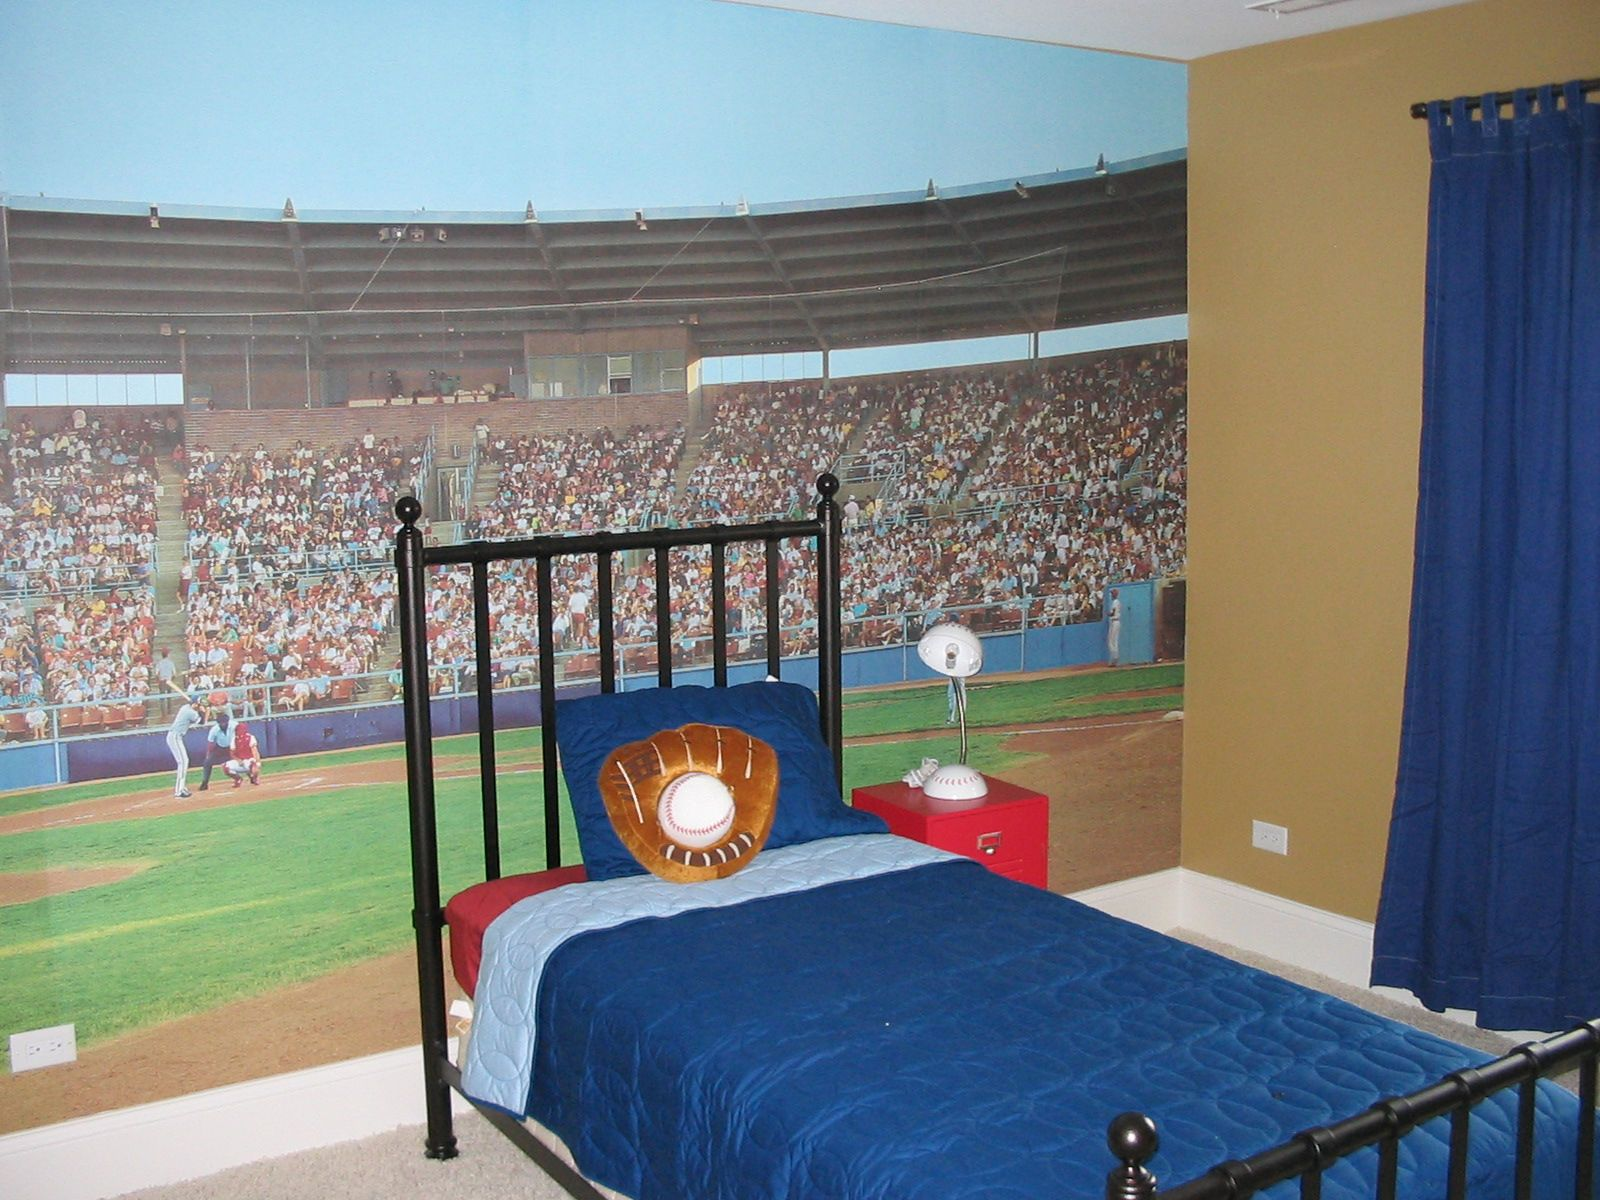 Boys Baseball Bedroom Ideas boys baseball bedroom | design ideas | theme bedrooms | casen